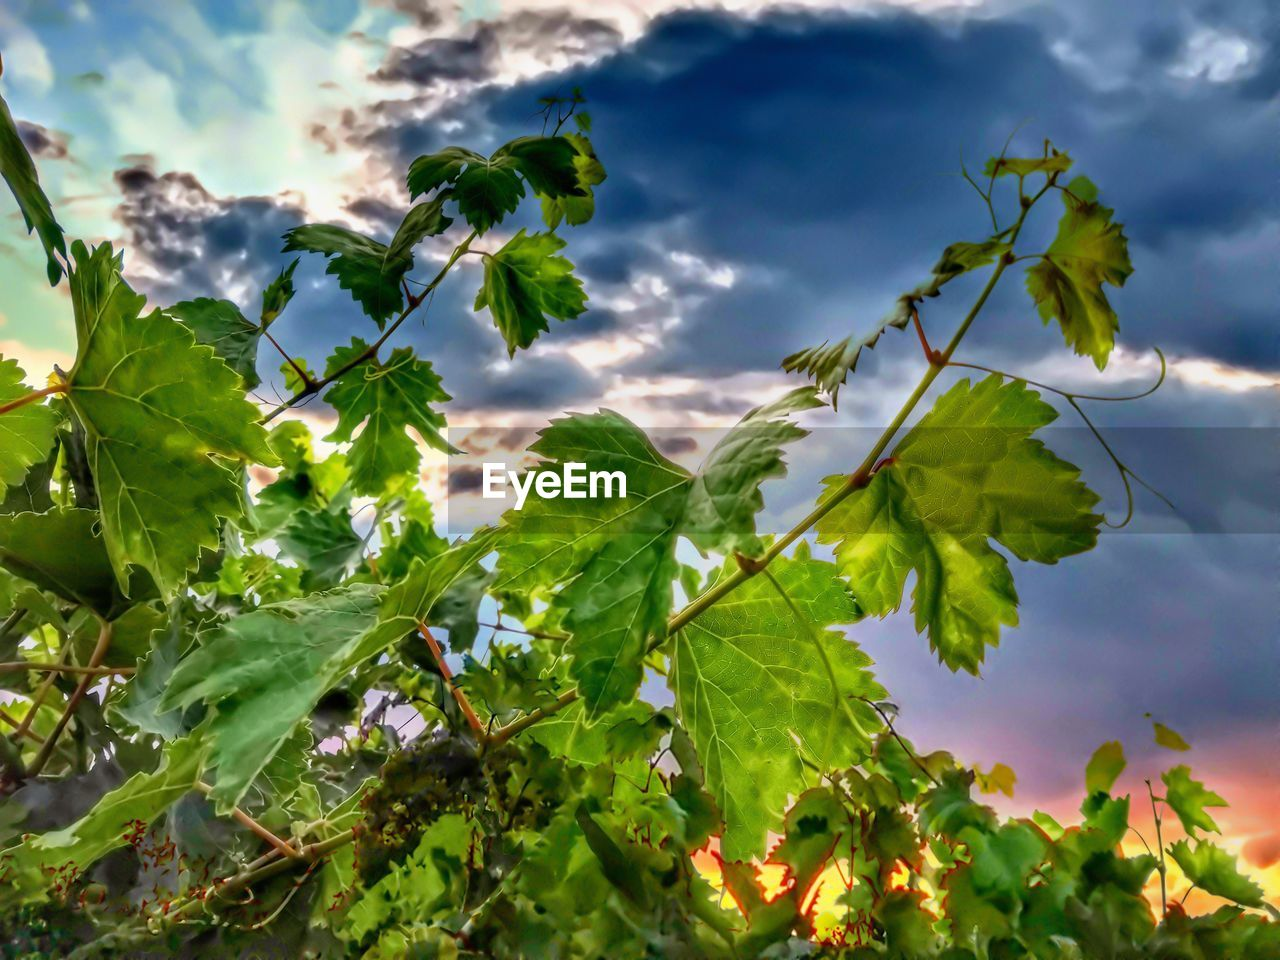 leaf, plant part, plant, growth, beauty in nature, green color, sky, nature, cloud - sky, day, close-up, low angle view, no people, freshness, outdoors, vulnerability, selective focus, fragility, tranquility, sunlight